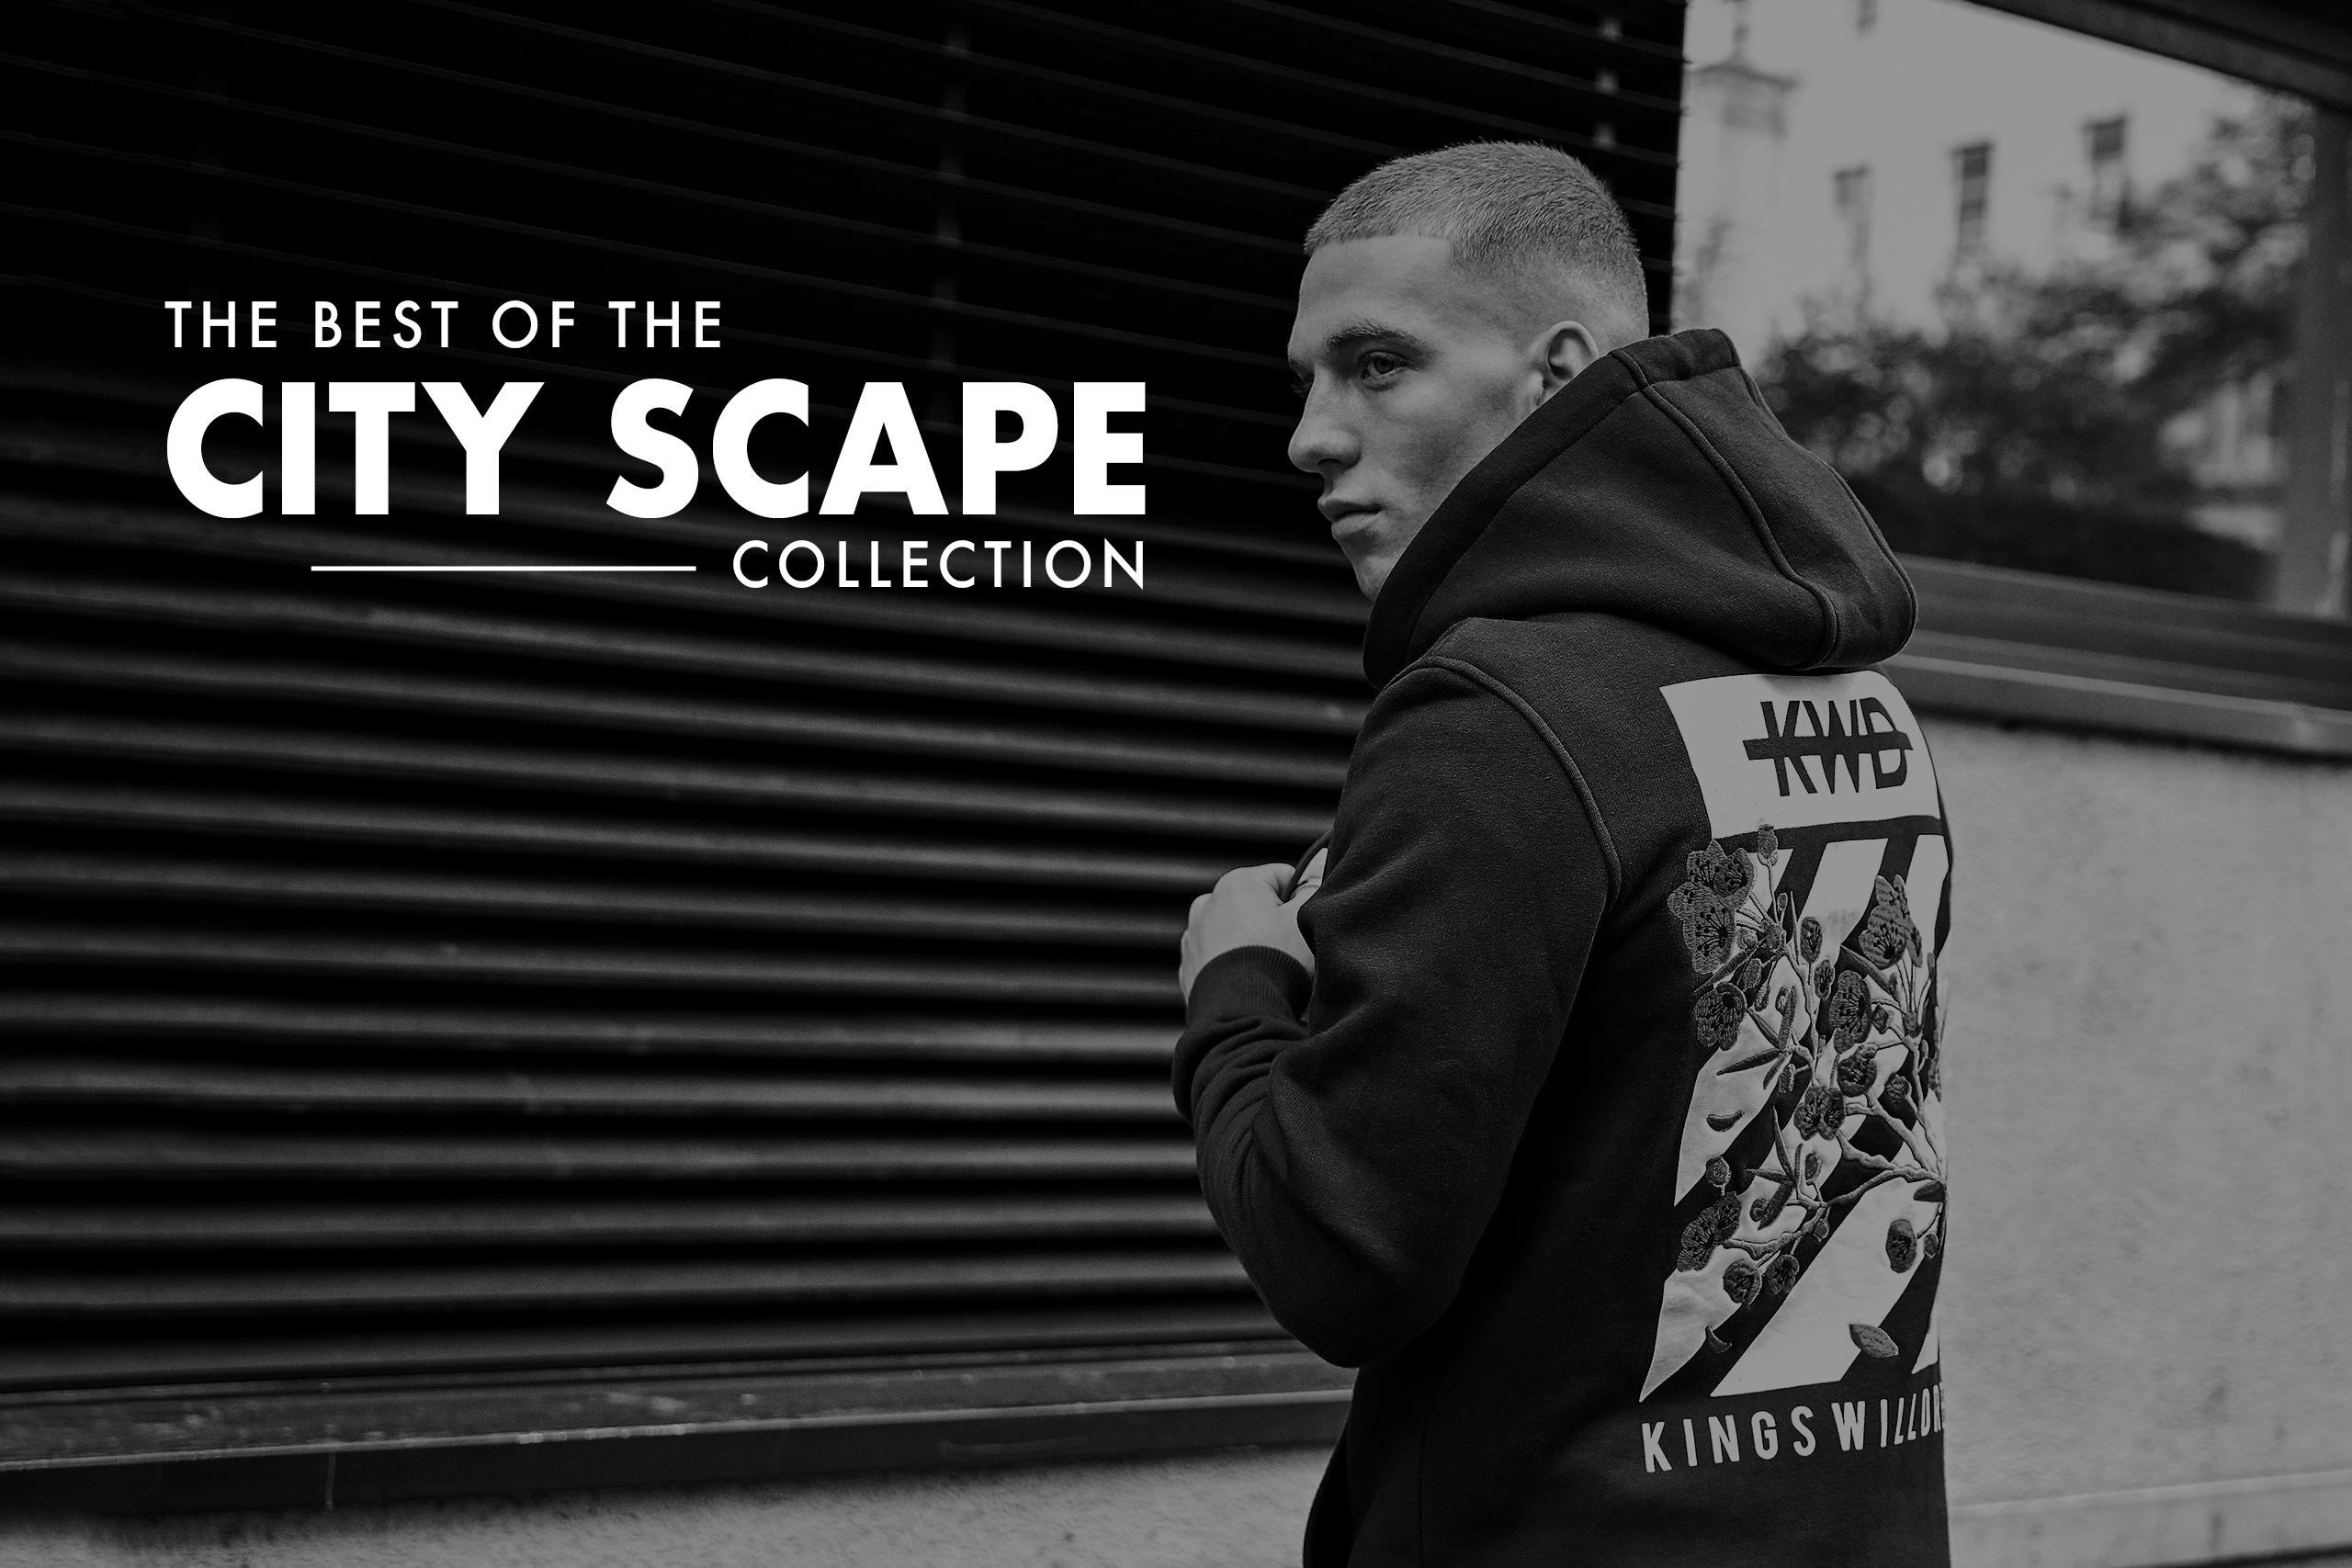 The Best of the City Scape Collection